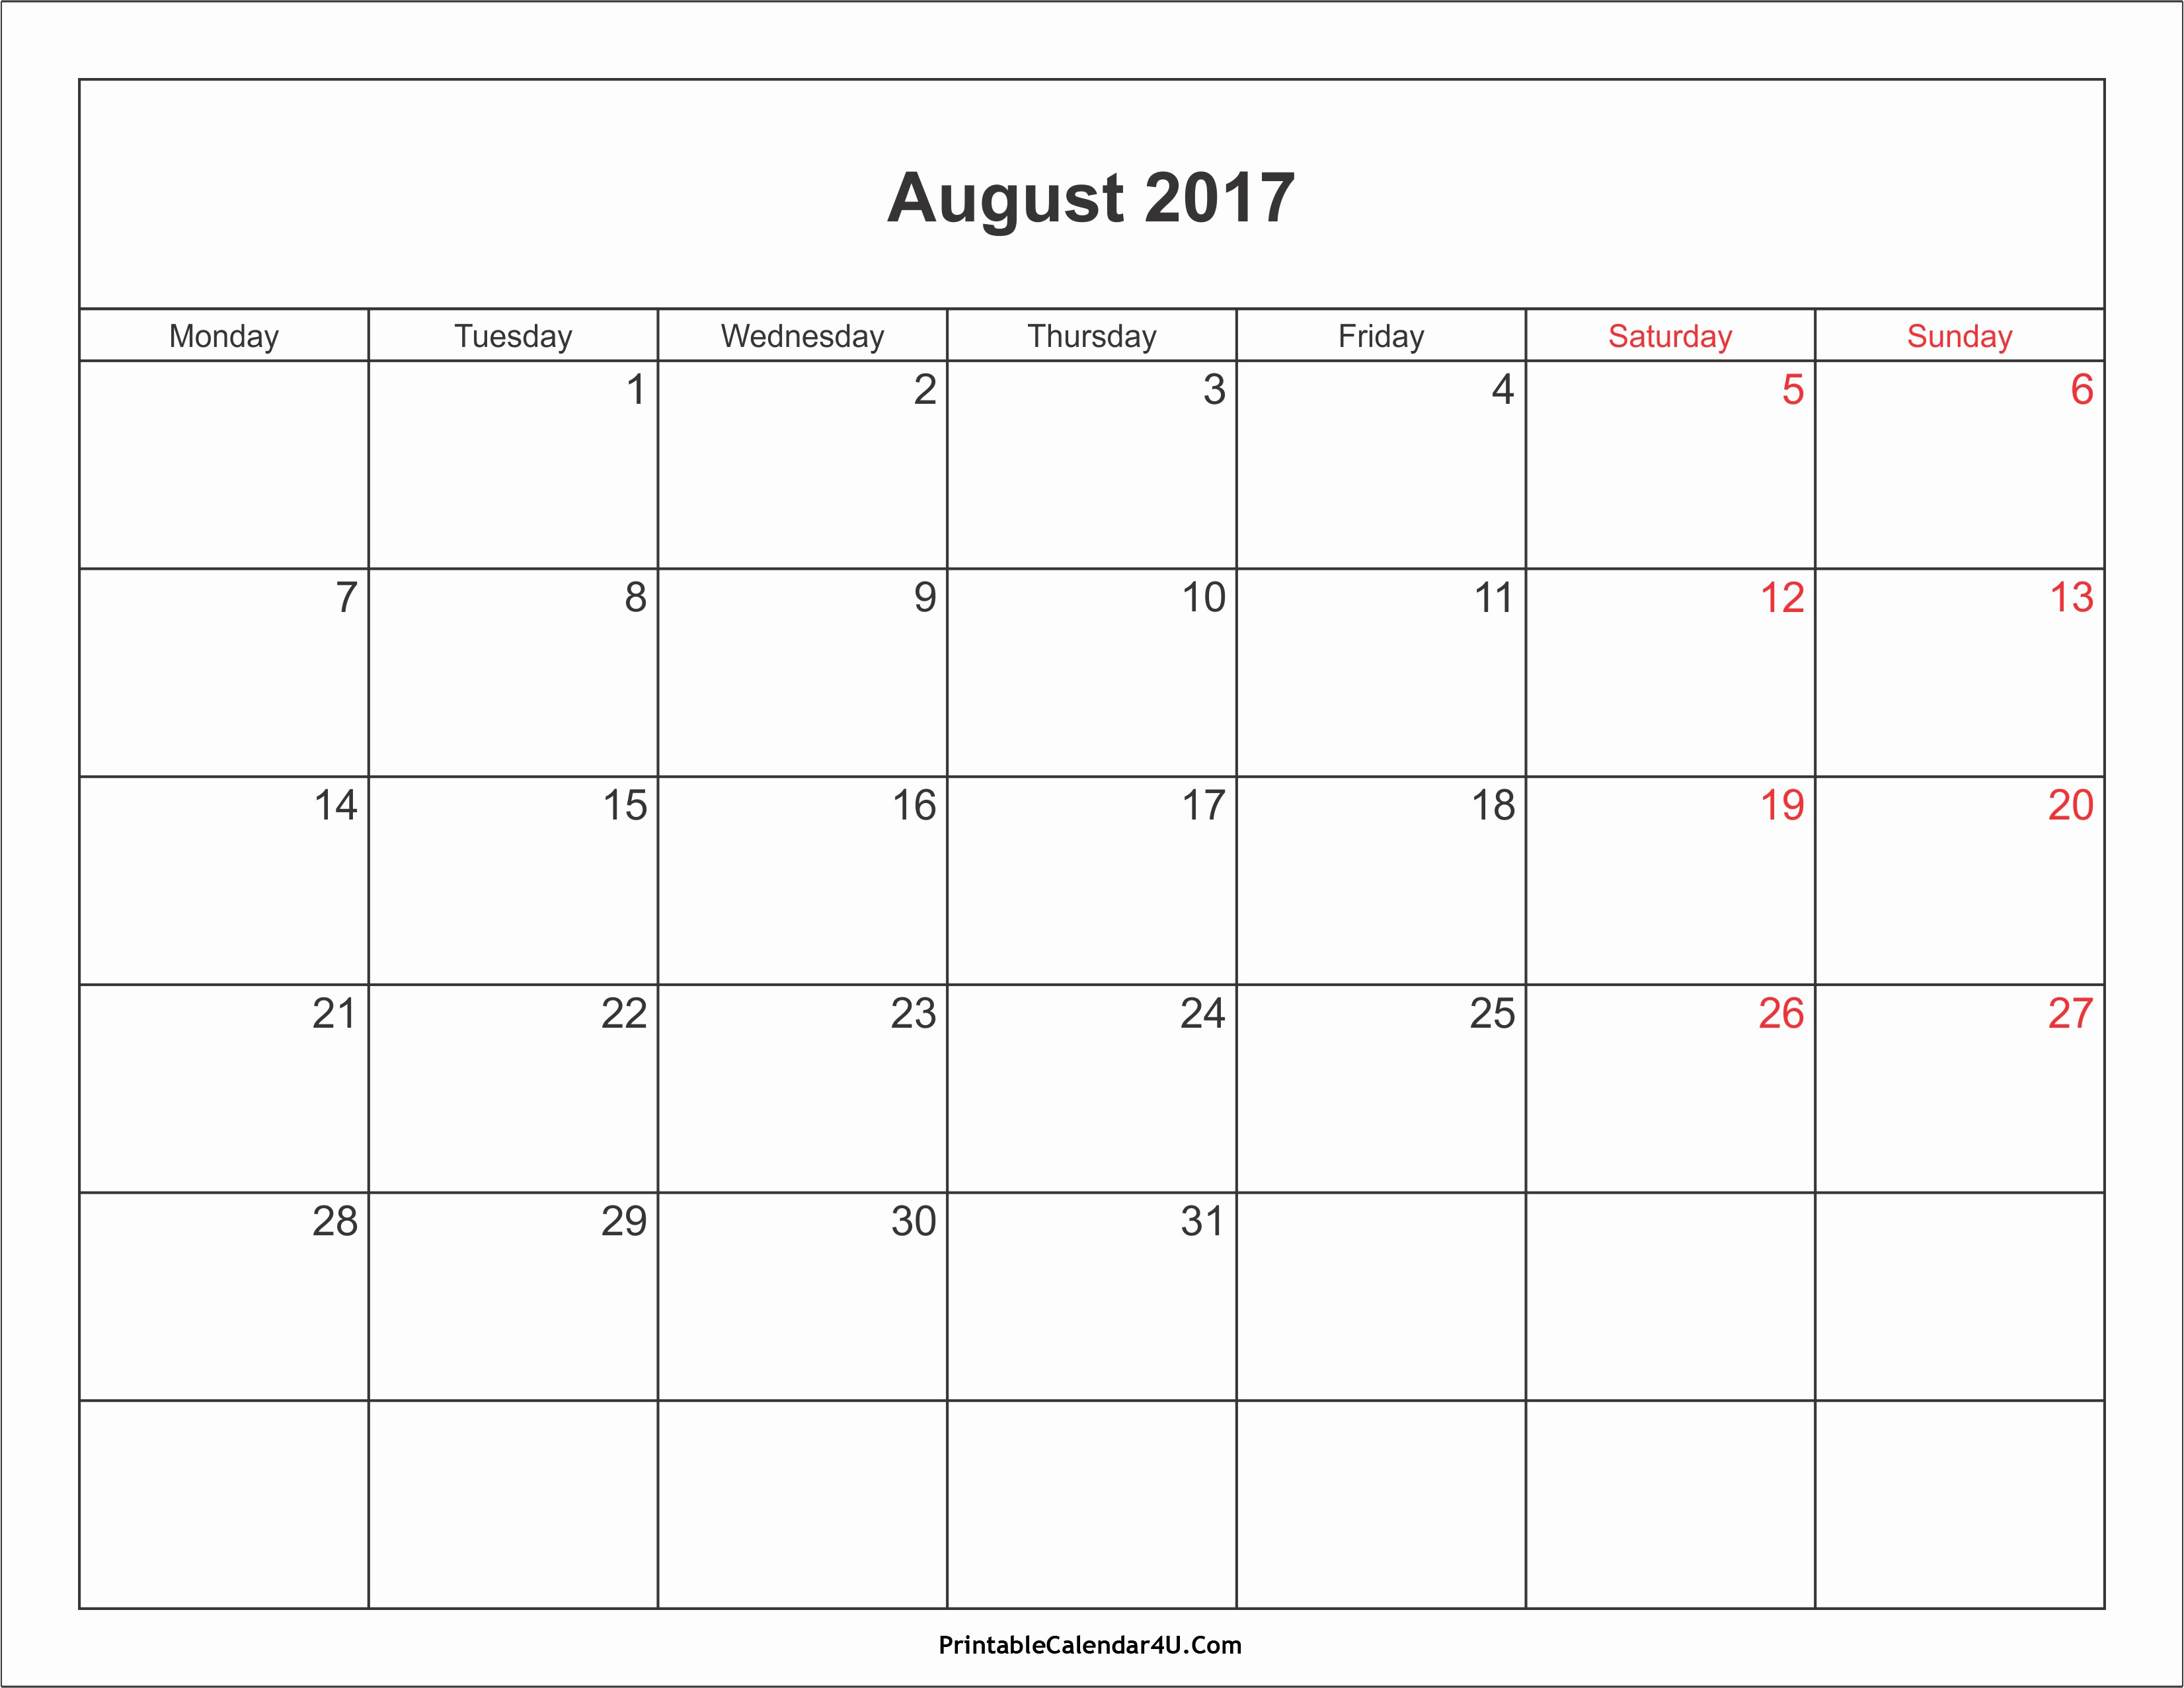 Blank Calendar Template August 2017 New August 2017 Calendar with Holidays